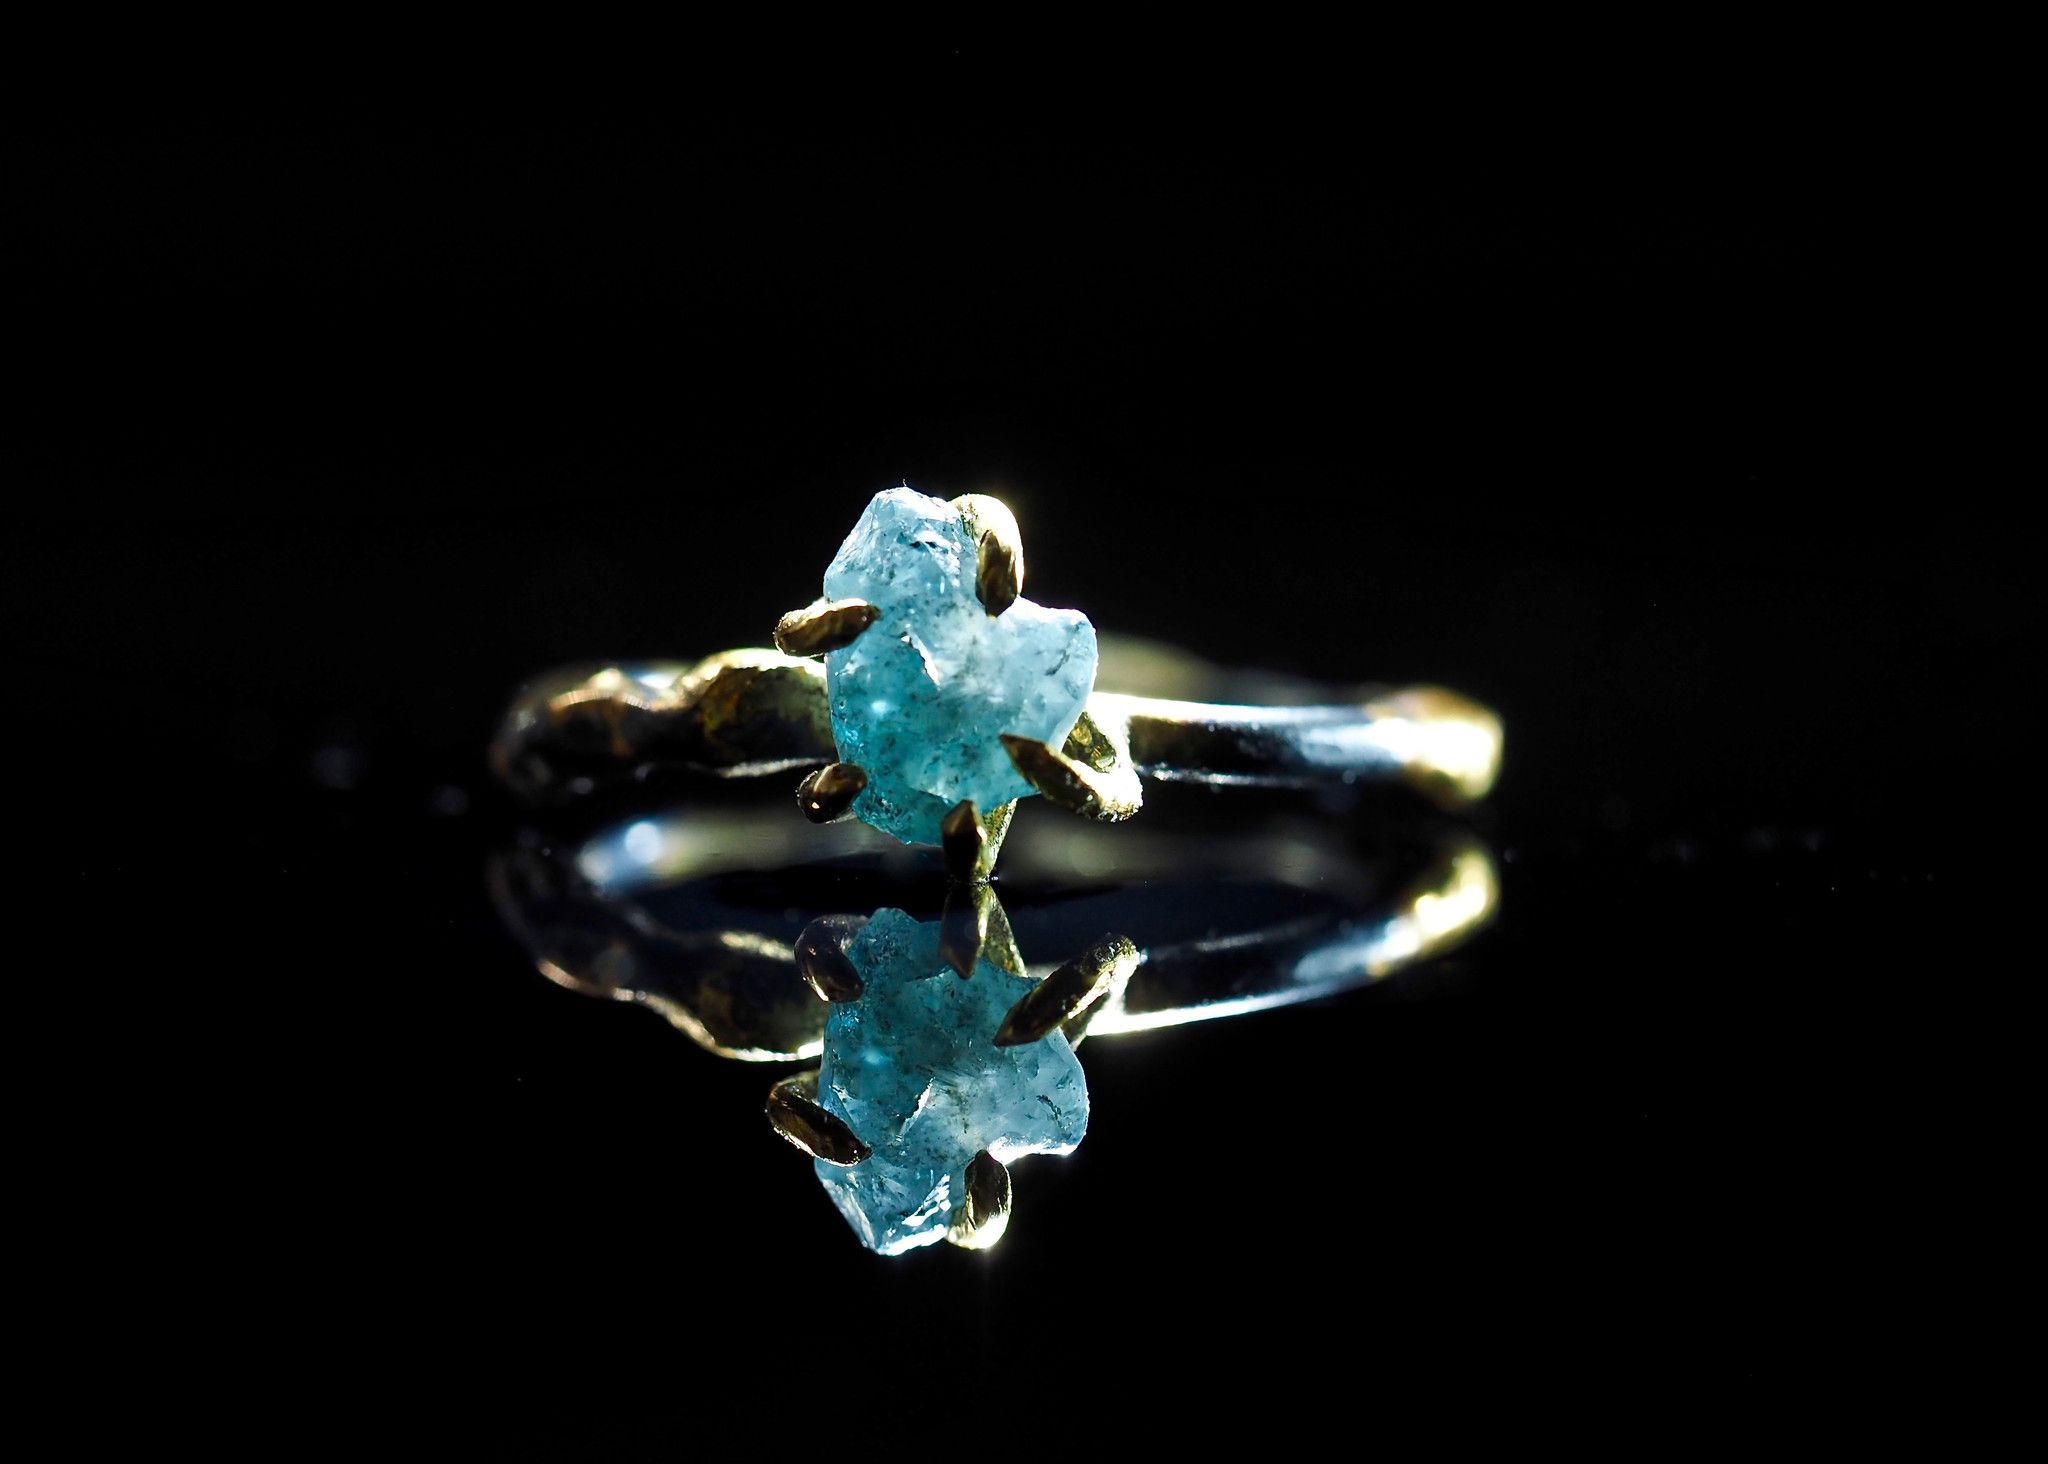 Raw Natural Uncut Conflict Free Blue Diamond in 18k Gold and